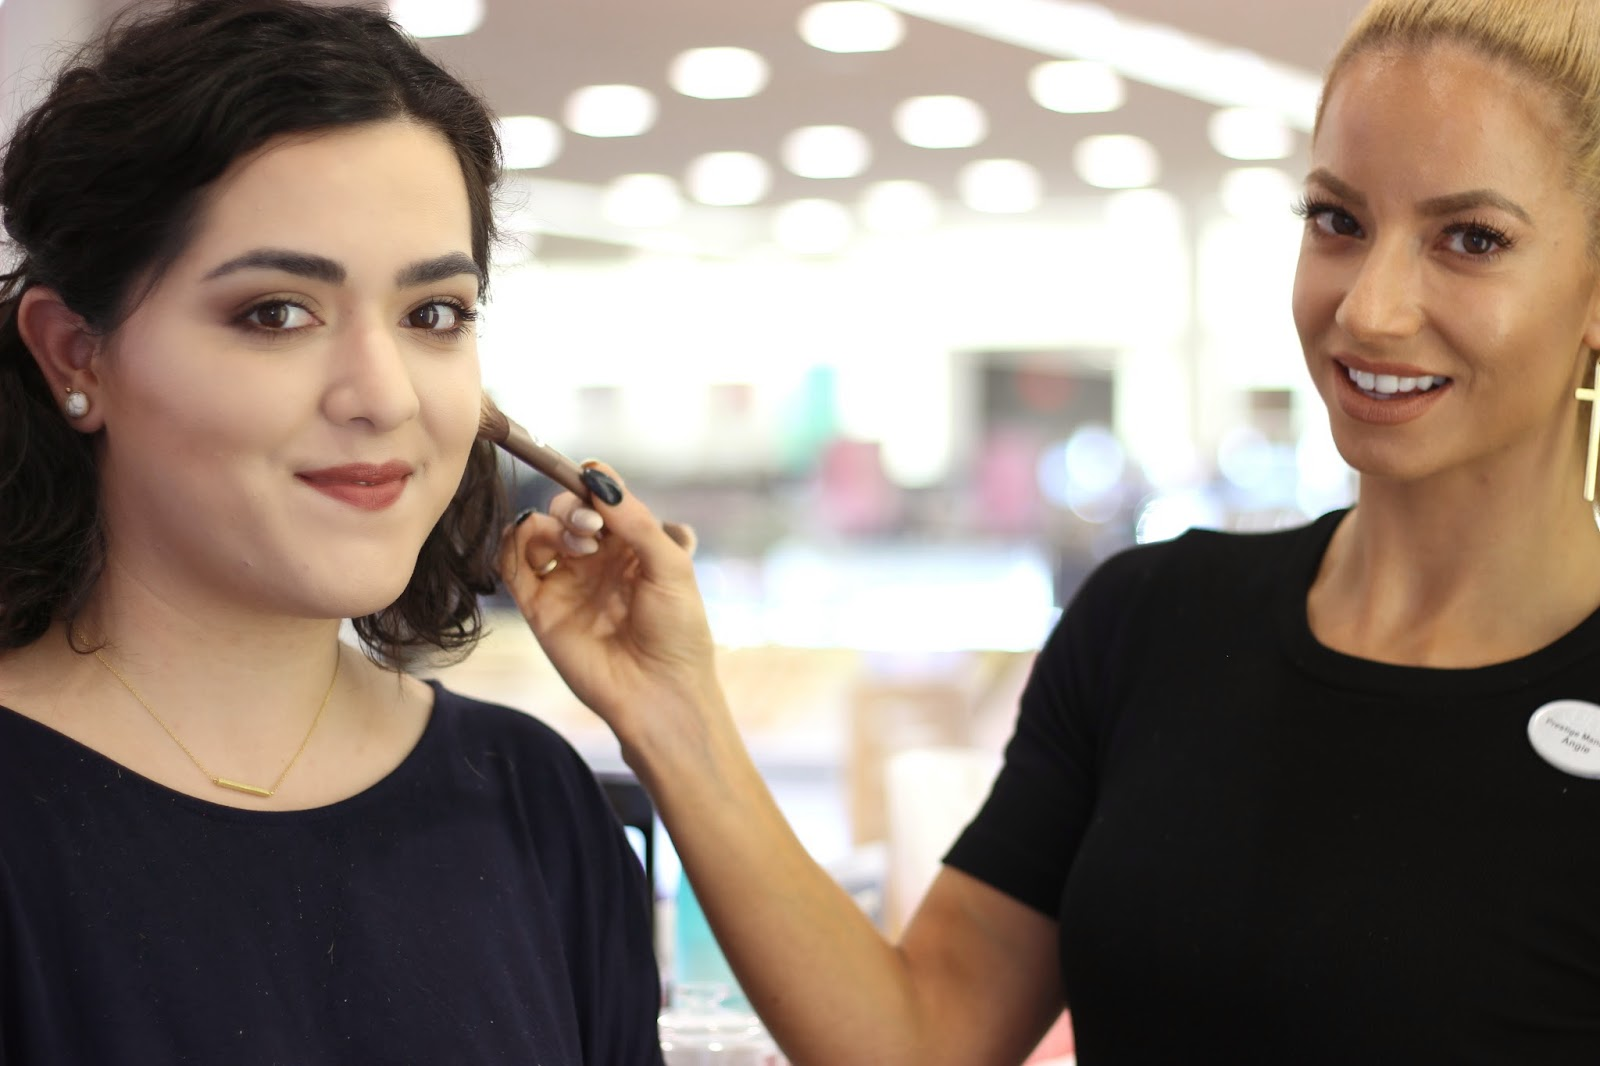 Contouring with Ulta